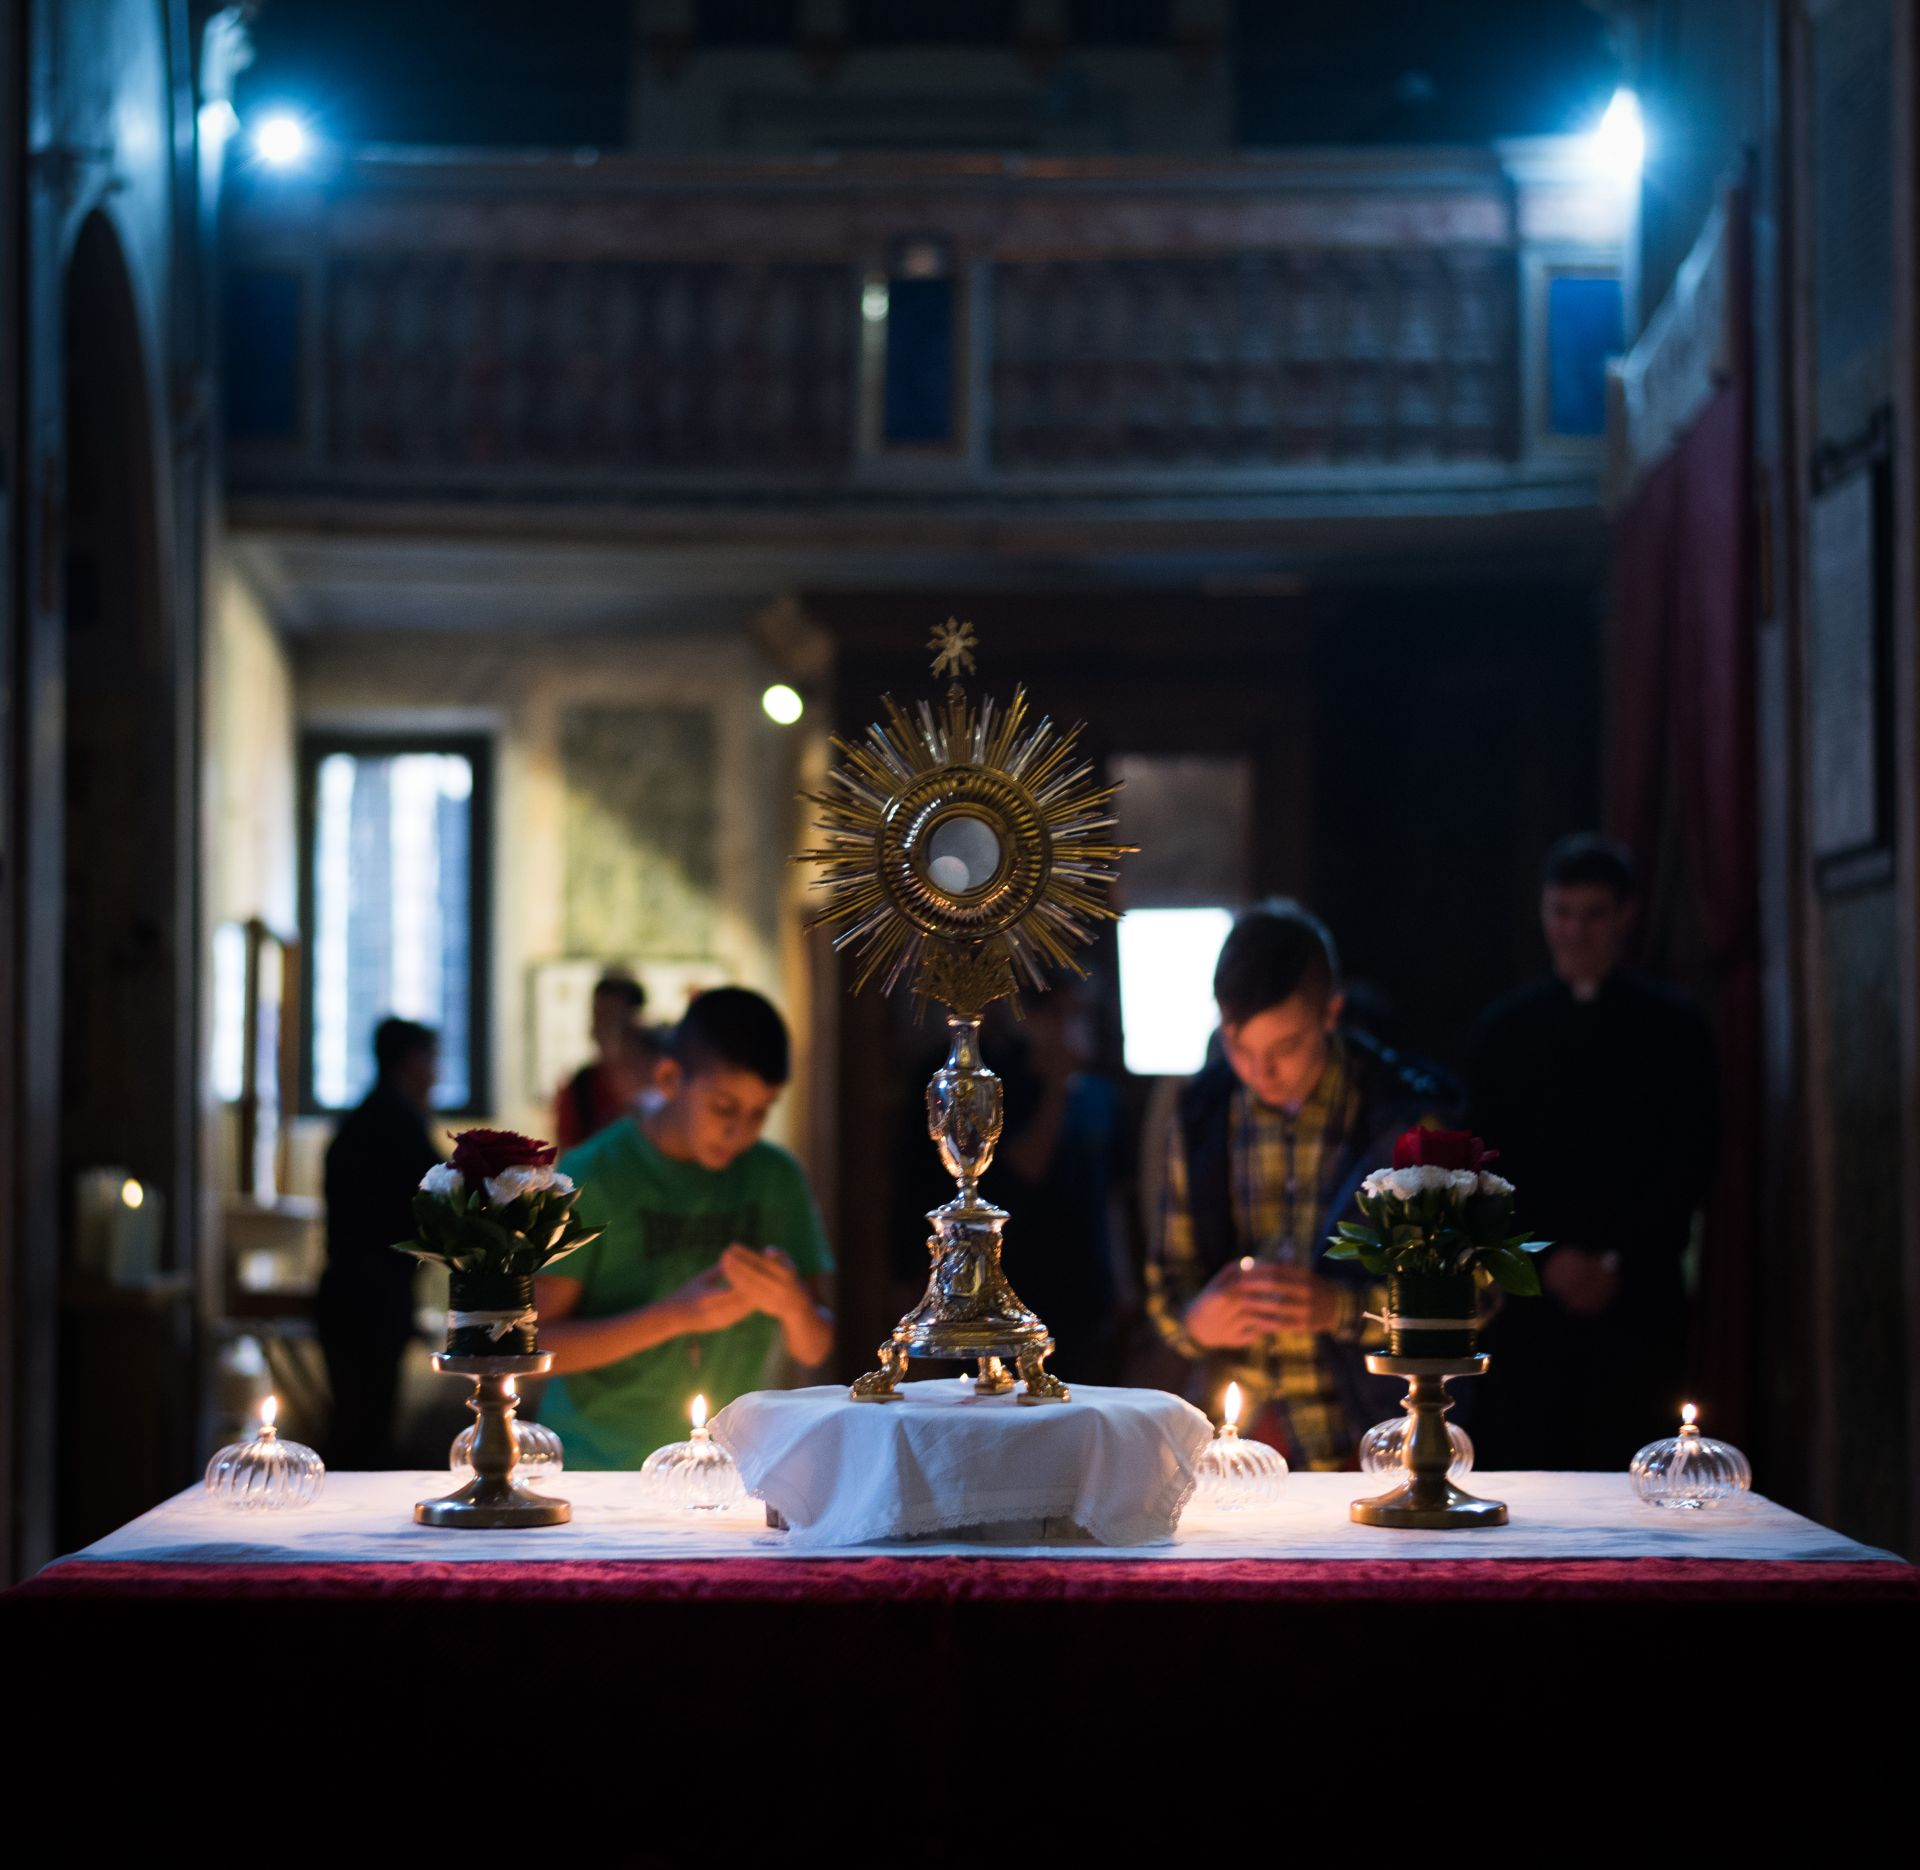 exposition, blessed sacrament, consecrated host, worship, to worship, eucharist, bread of life, god, king, sir, bread from heaven, ostensorio, body of christ, young boys, youth